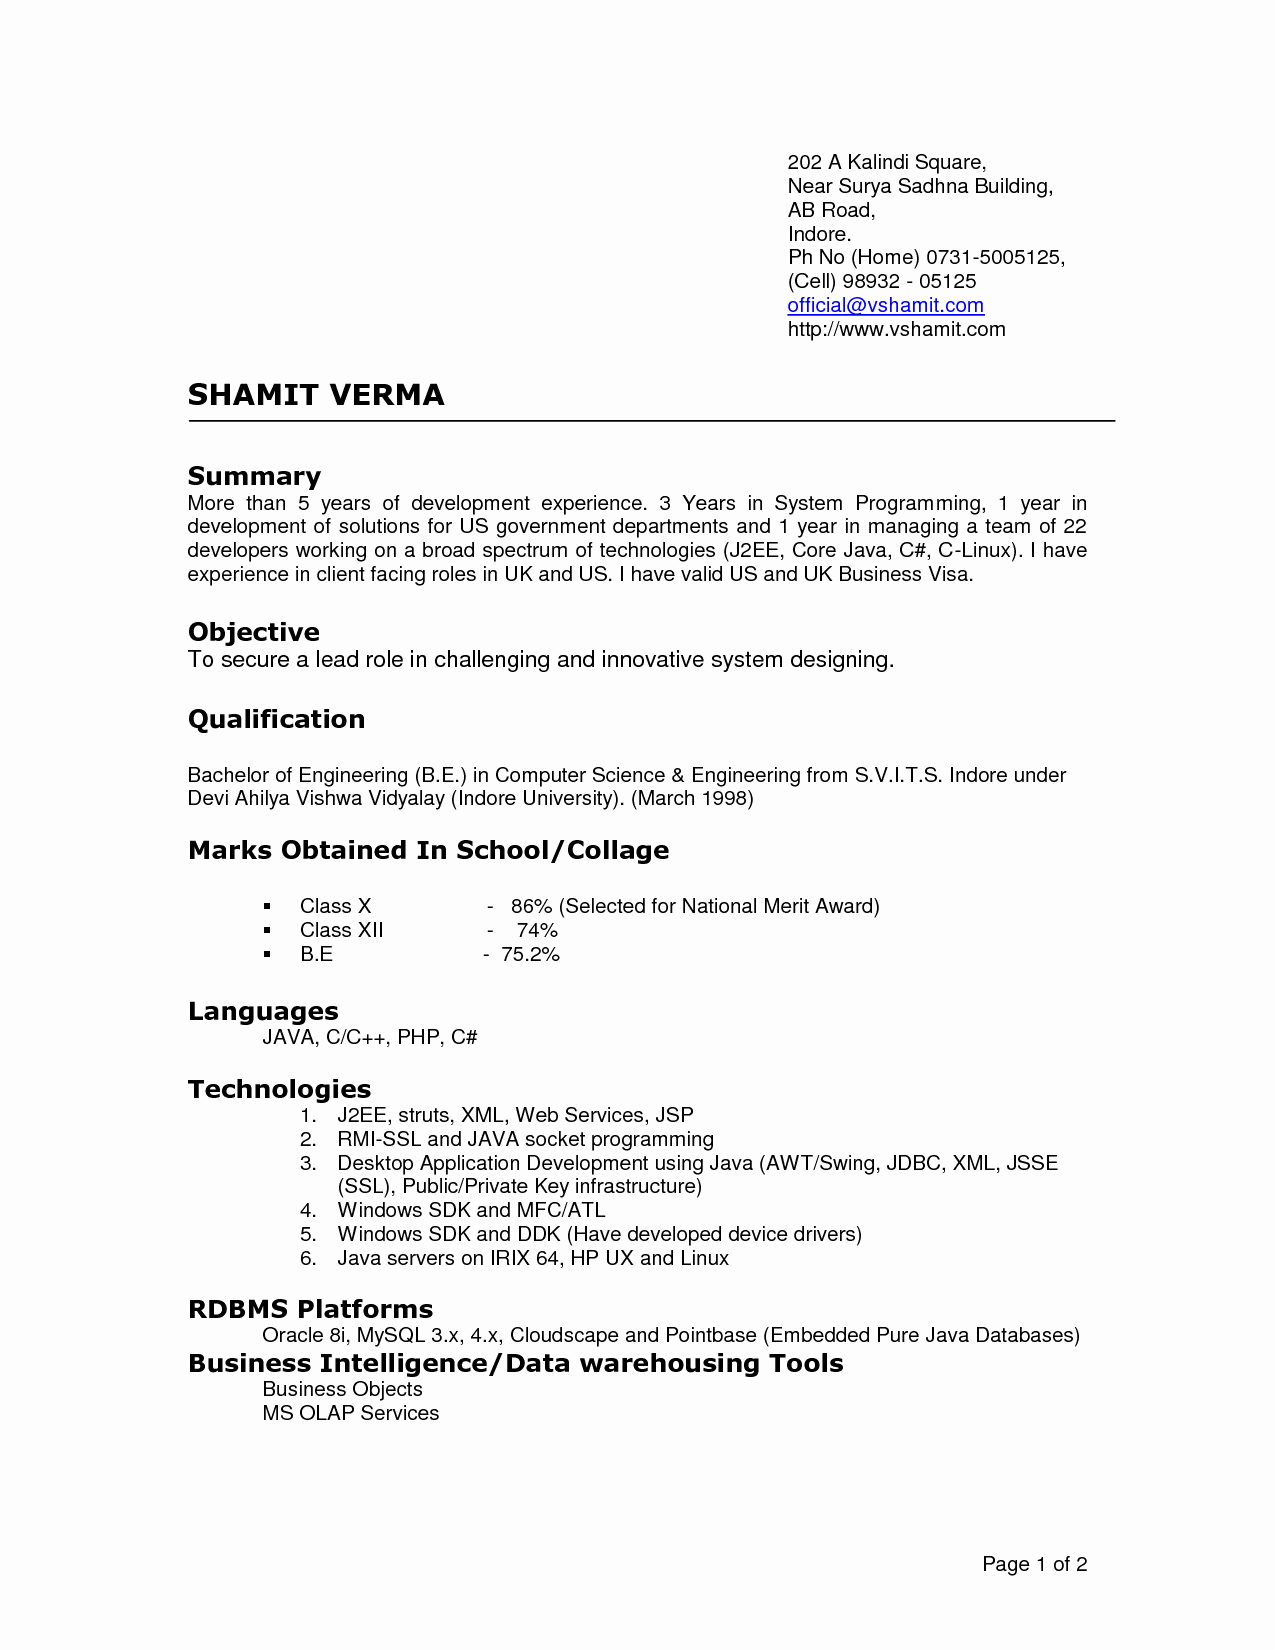 Current Nursing Student Resume Best Of Current Resume format